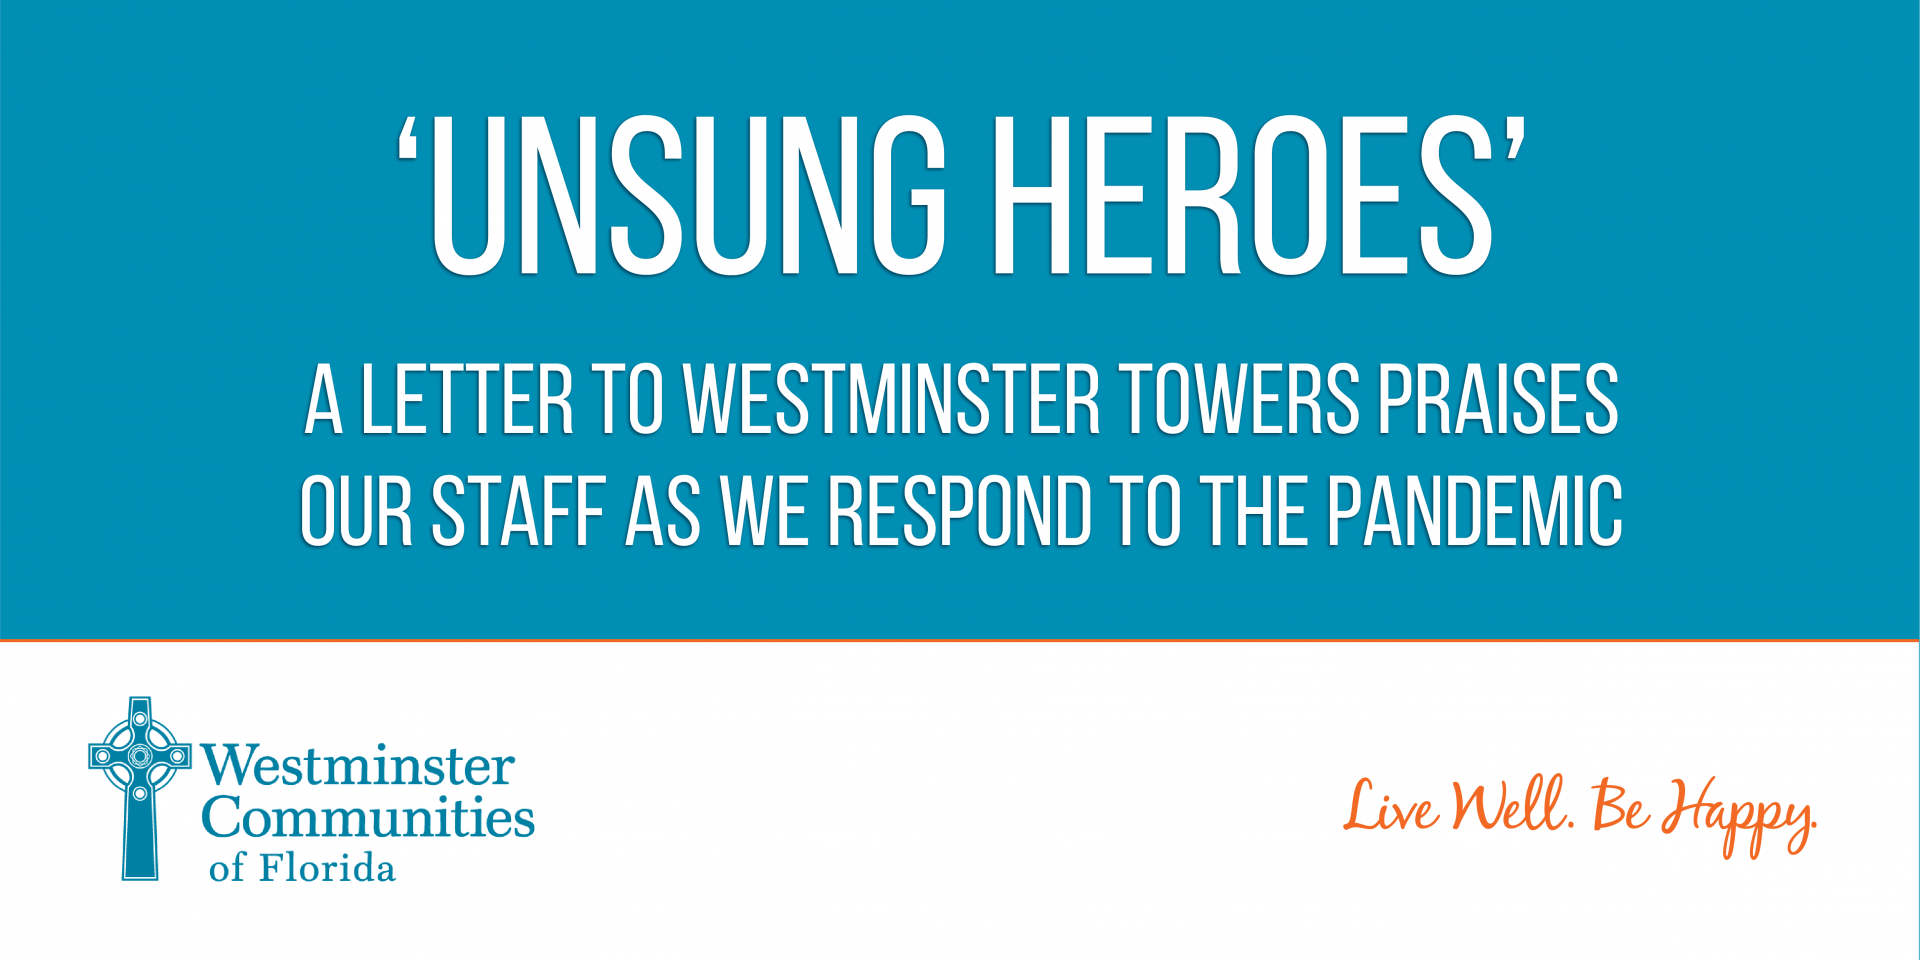 Unsung Heroes: An Anonymous Letter Sent to Westminster Towers Praising their Staff